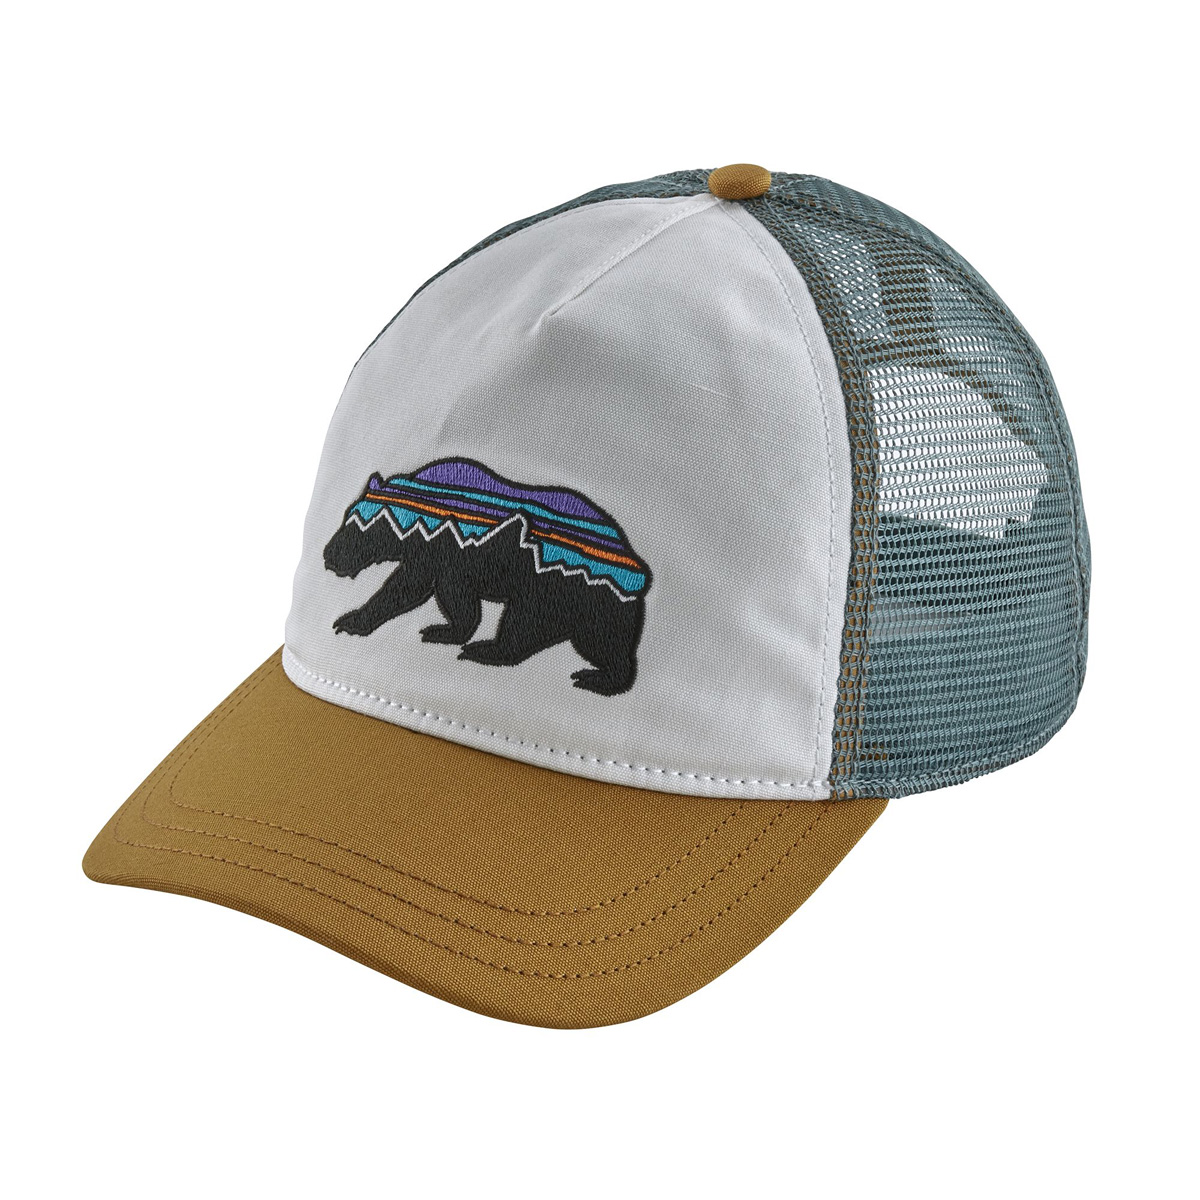 PATAGONIA WOMEN'S FITZ ROY BEAR LAYBACK TRUCKER HAT (38209)